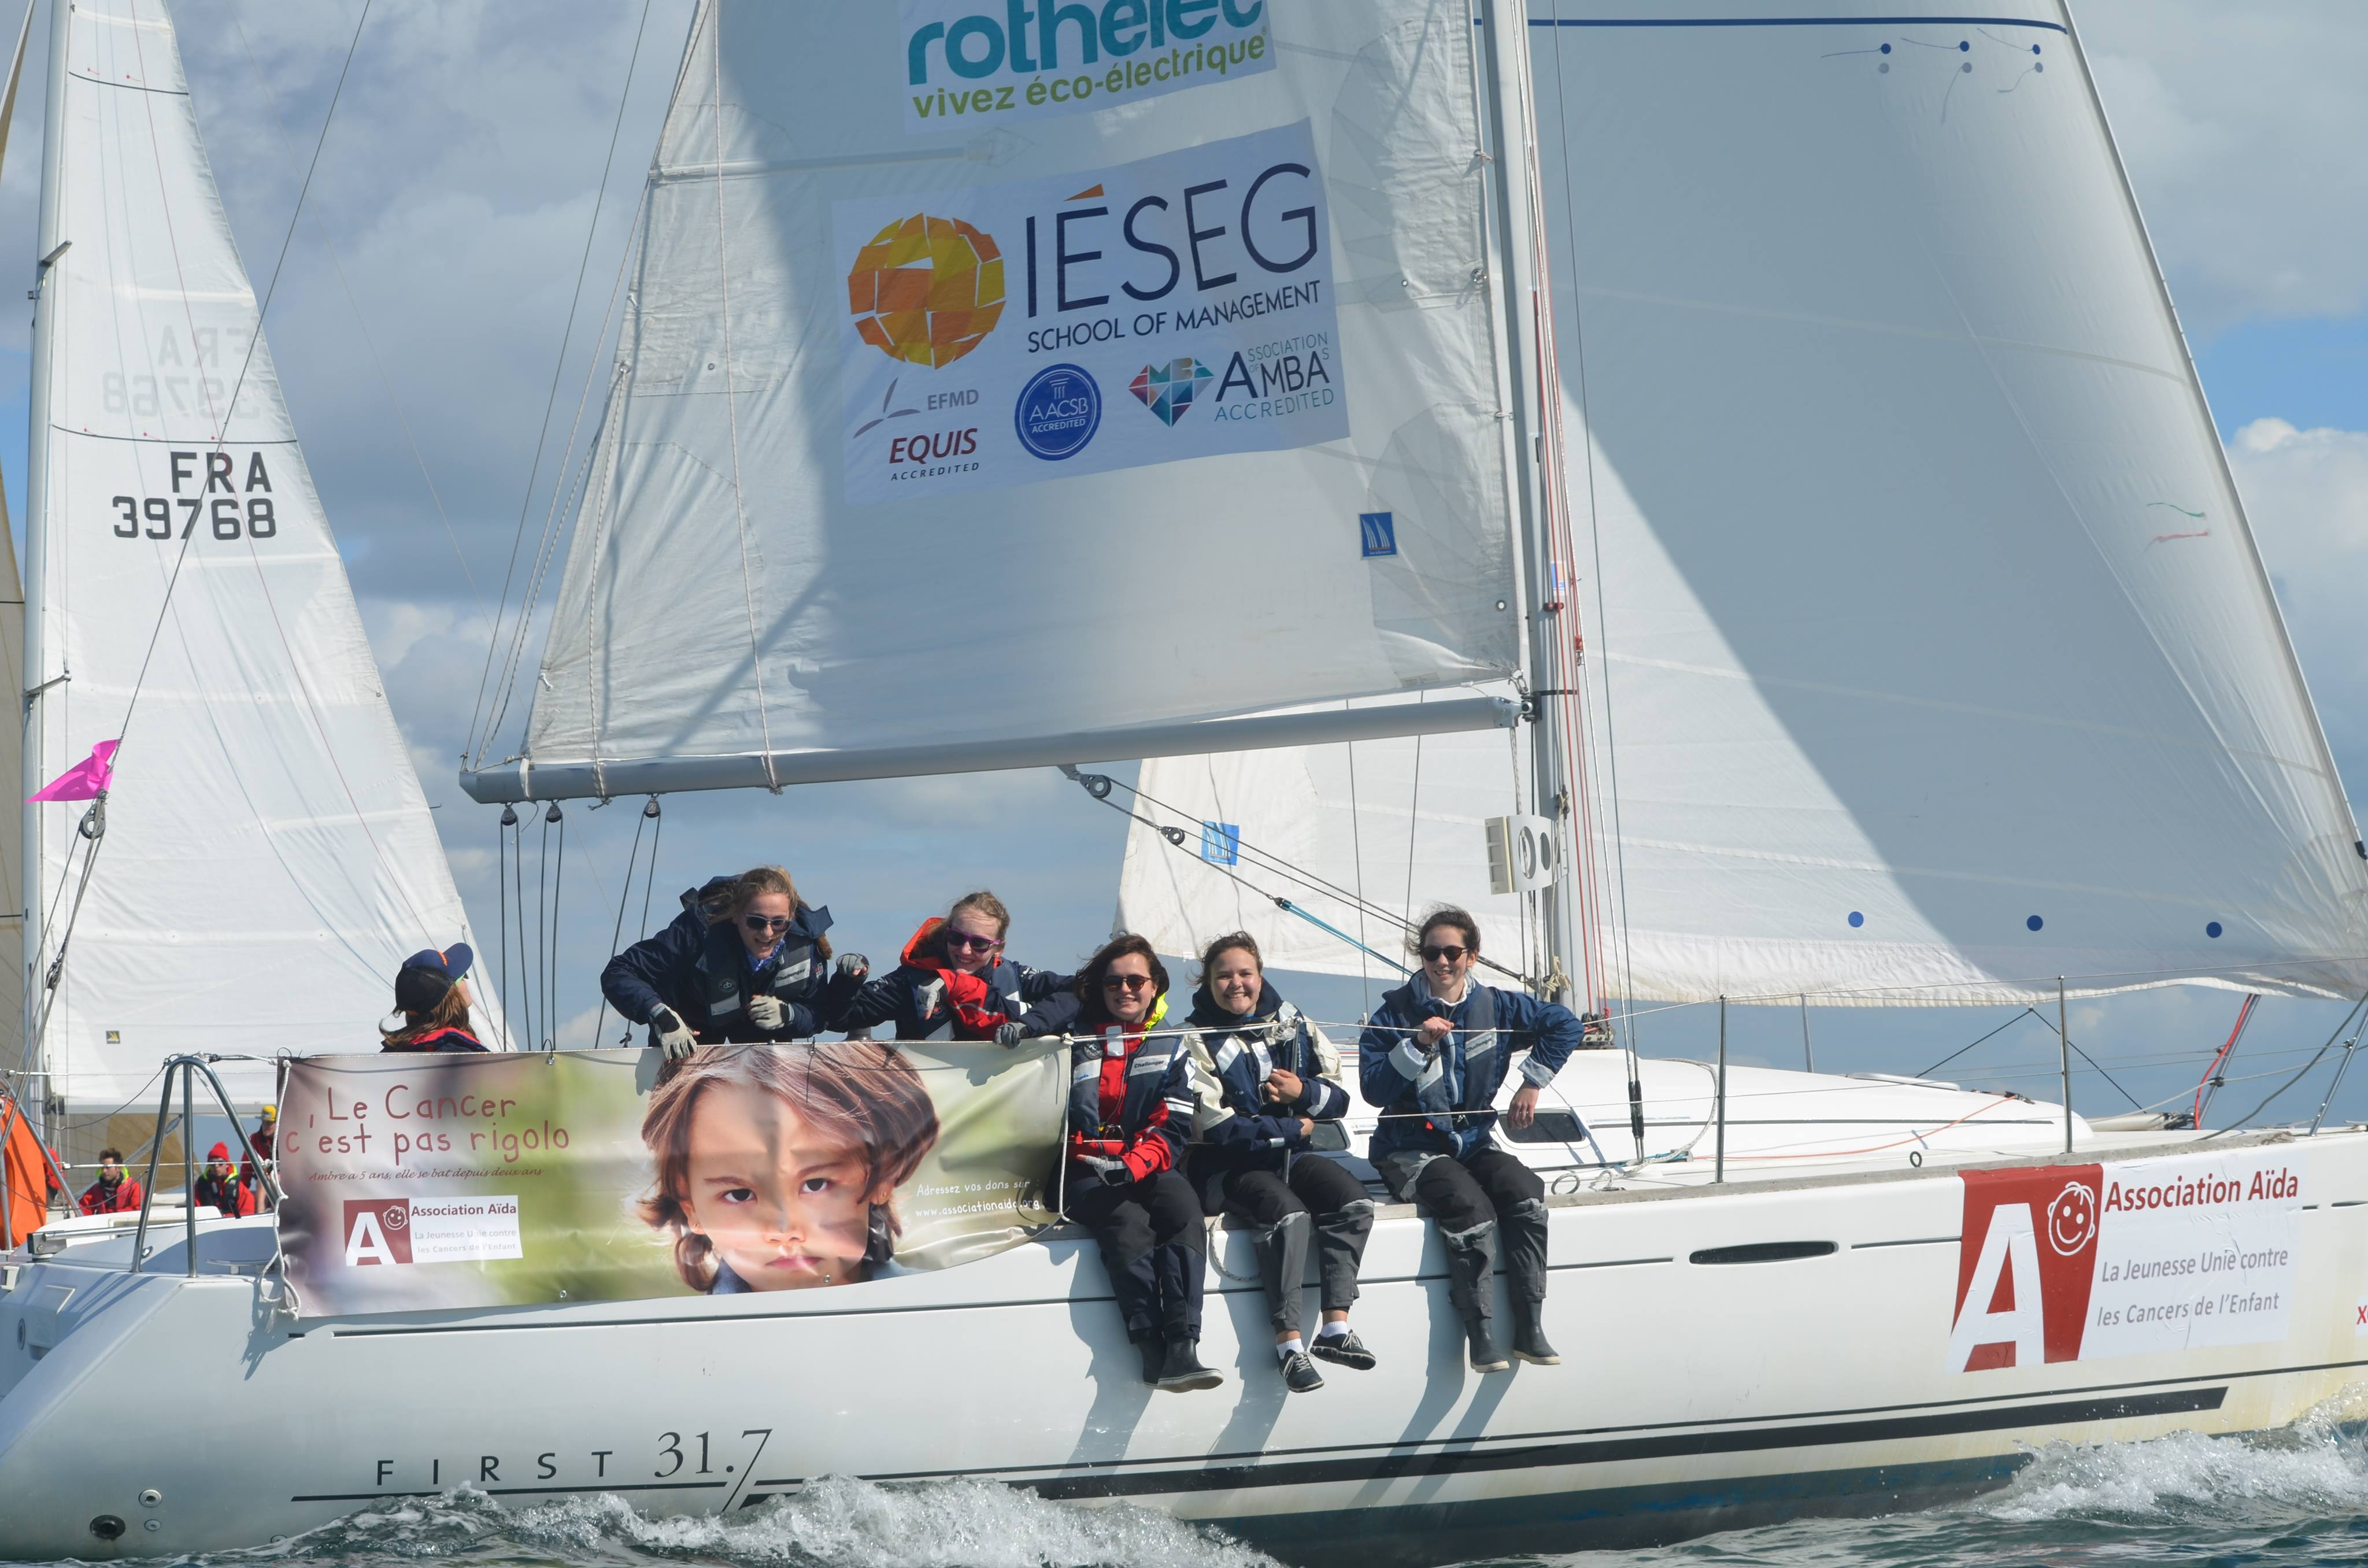 IESEG Voile Lille